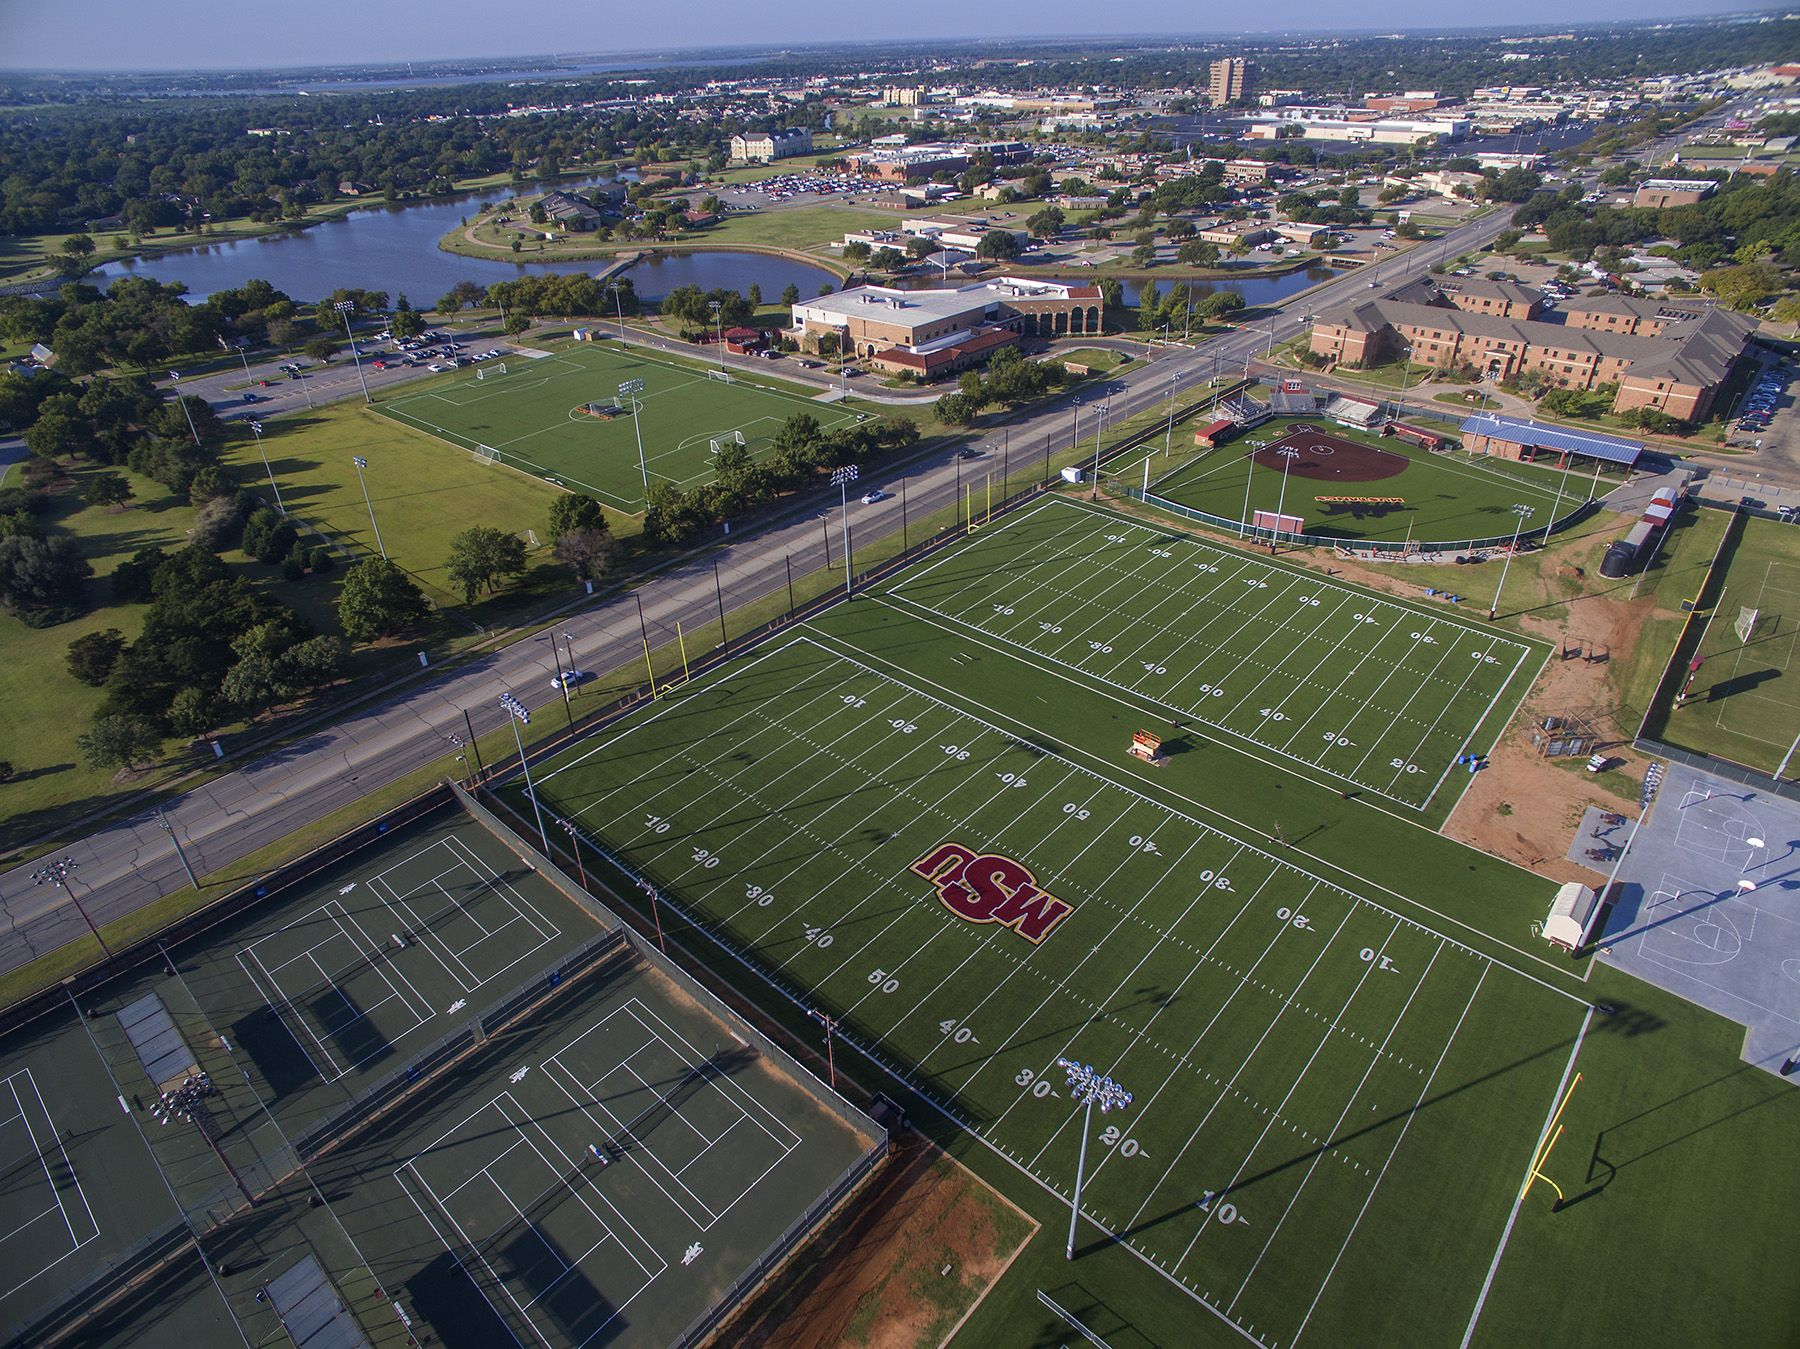 The Midwestern State University Turf Fields Were Added To The Campus